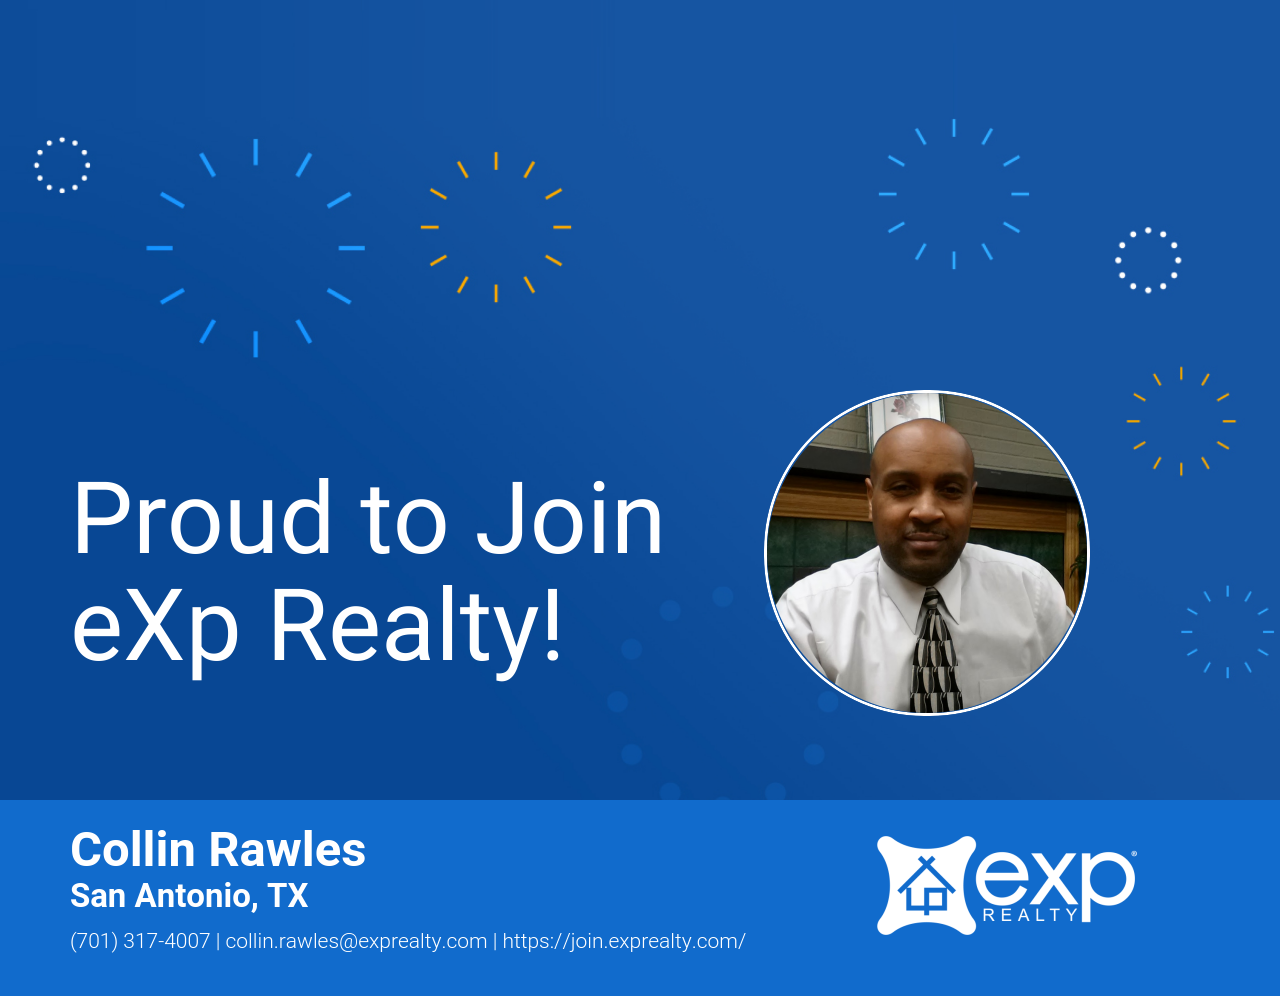 Collin Rawles Joined eXp Realty!